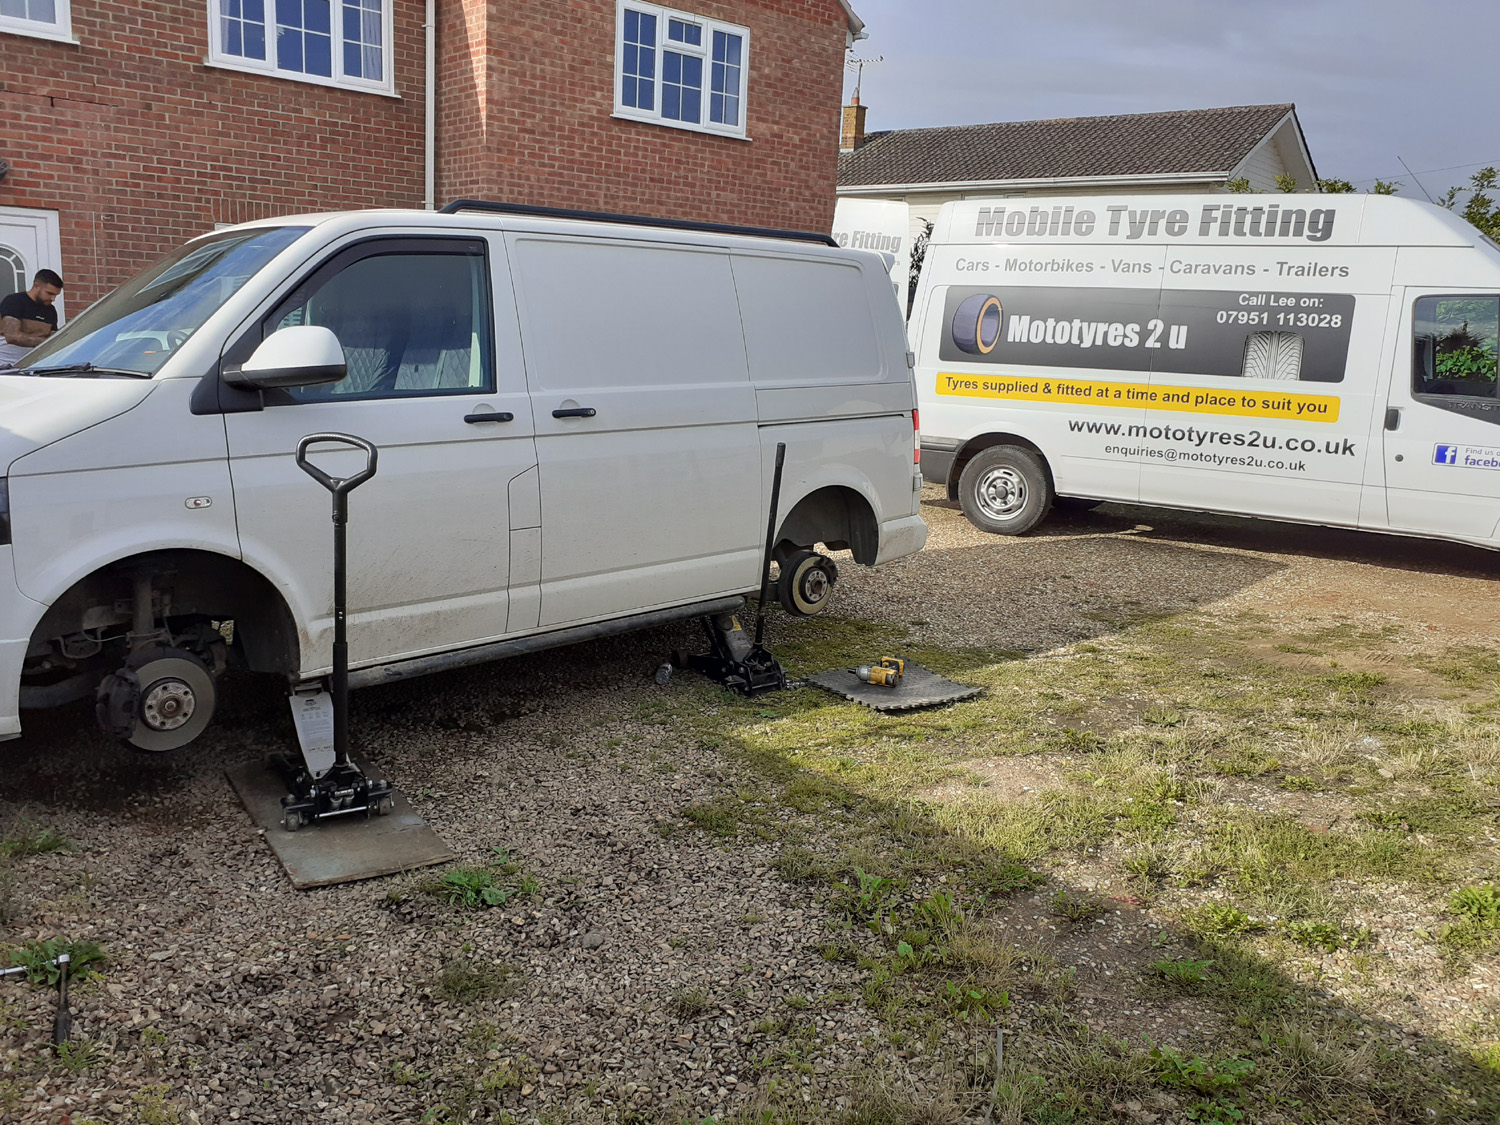 Mototyres 2 u Mobile Tyre fitting Lincolnshire Holbeach Tyres Van on driveway at home